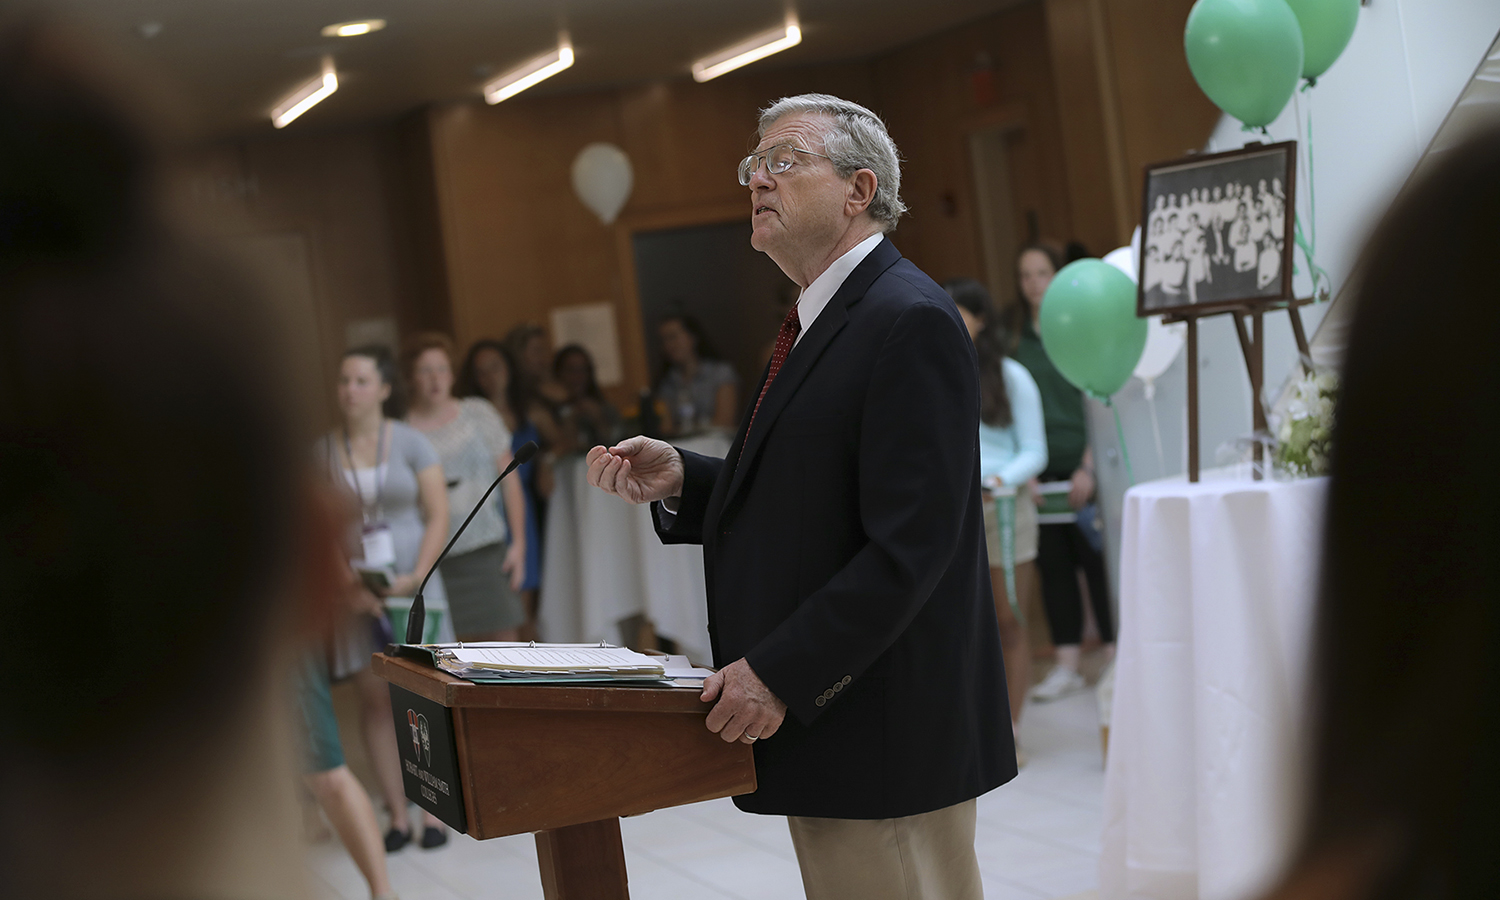 Interim President of Hobart and William Smith Colleges Patrick A. McGuire L.H.D. '12 welcomes the William Smith Class of 2022.